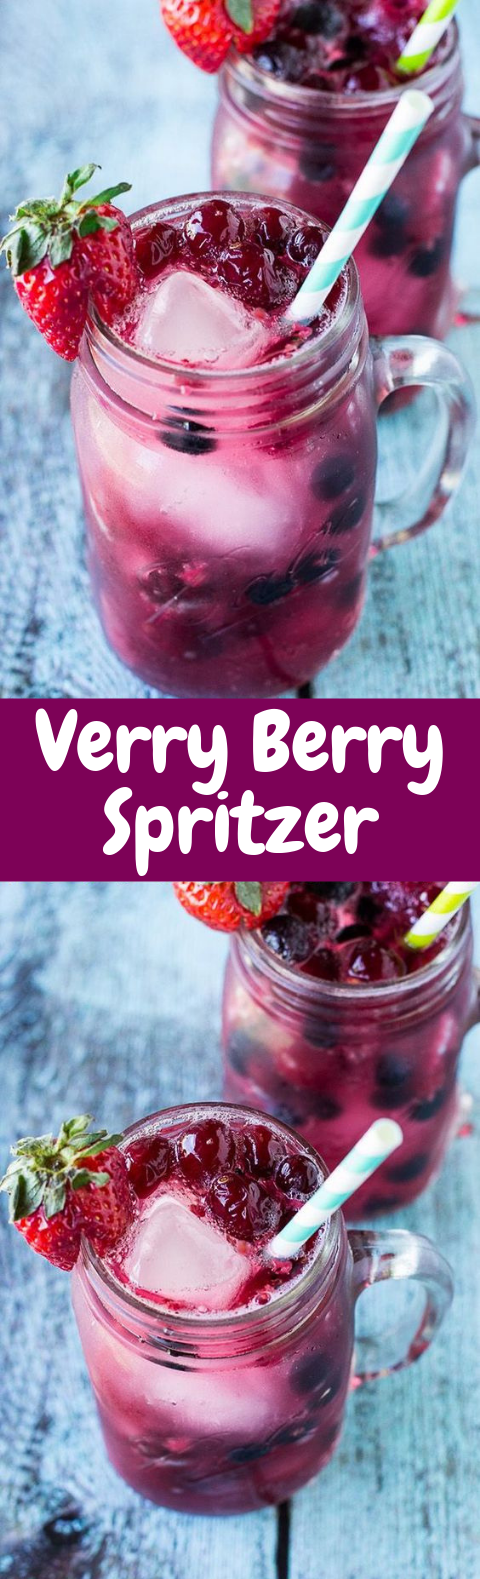 Very Berry Spritzer #Summer #Drink